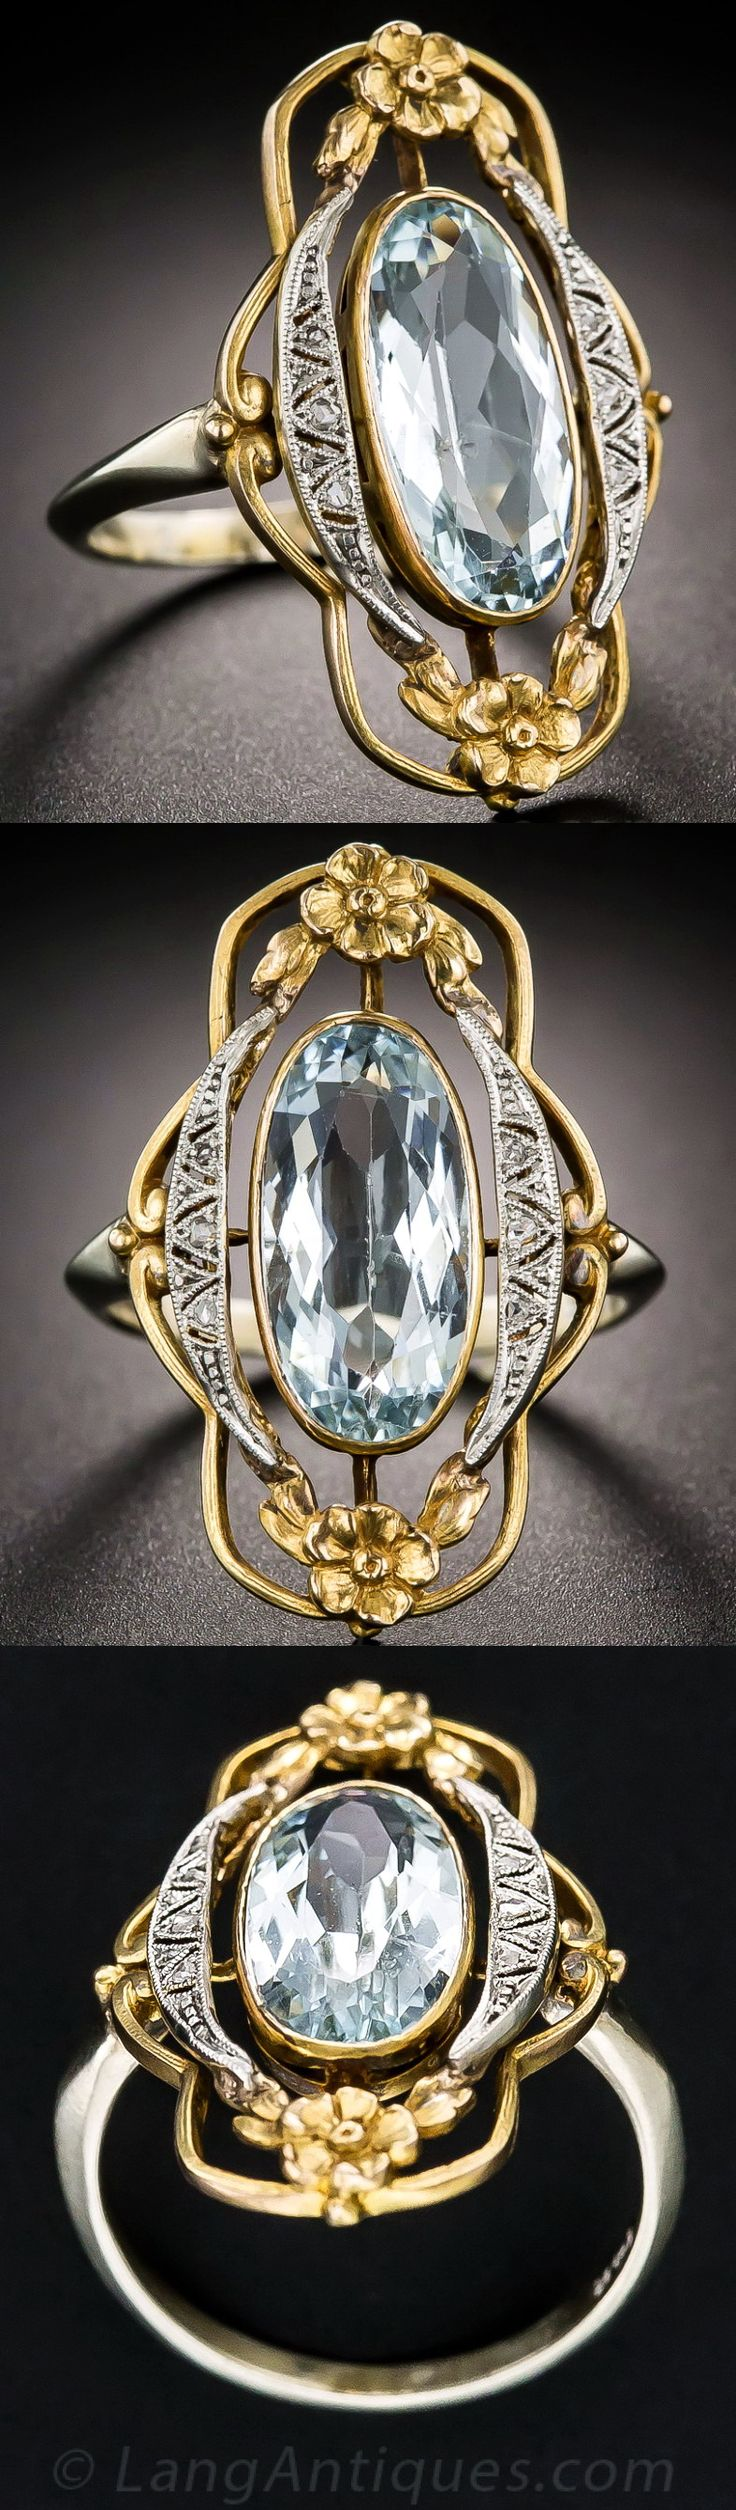 Rosamaria G Frangini | High Antique Jewellery | TJS | Art Nouveau Aquamarine and Diamond Ring. Early-twentieth century dinner ring.